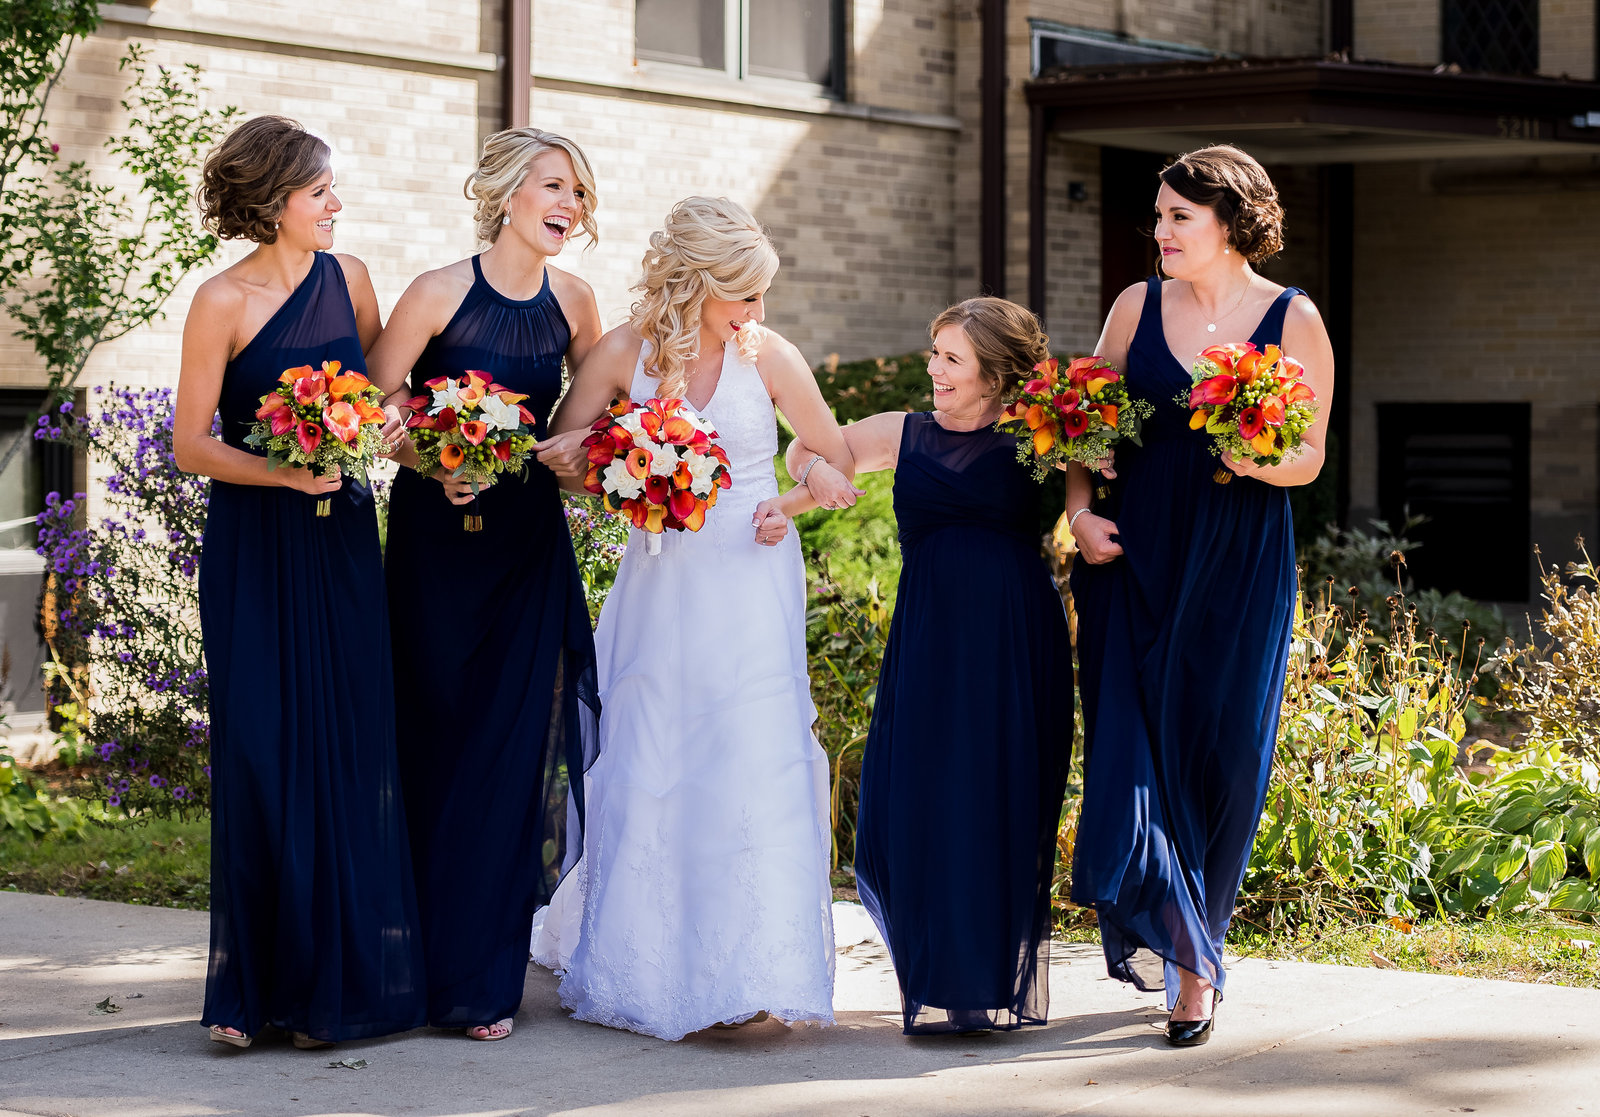 PIXSiGHT Photography - Chicago Wedding Photography (8)